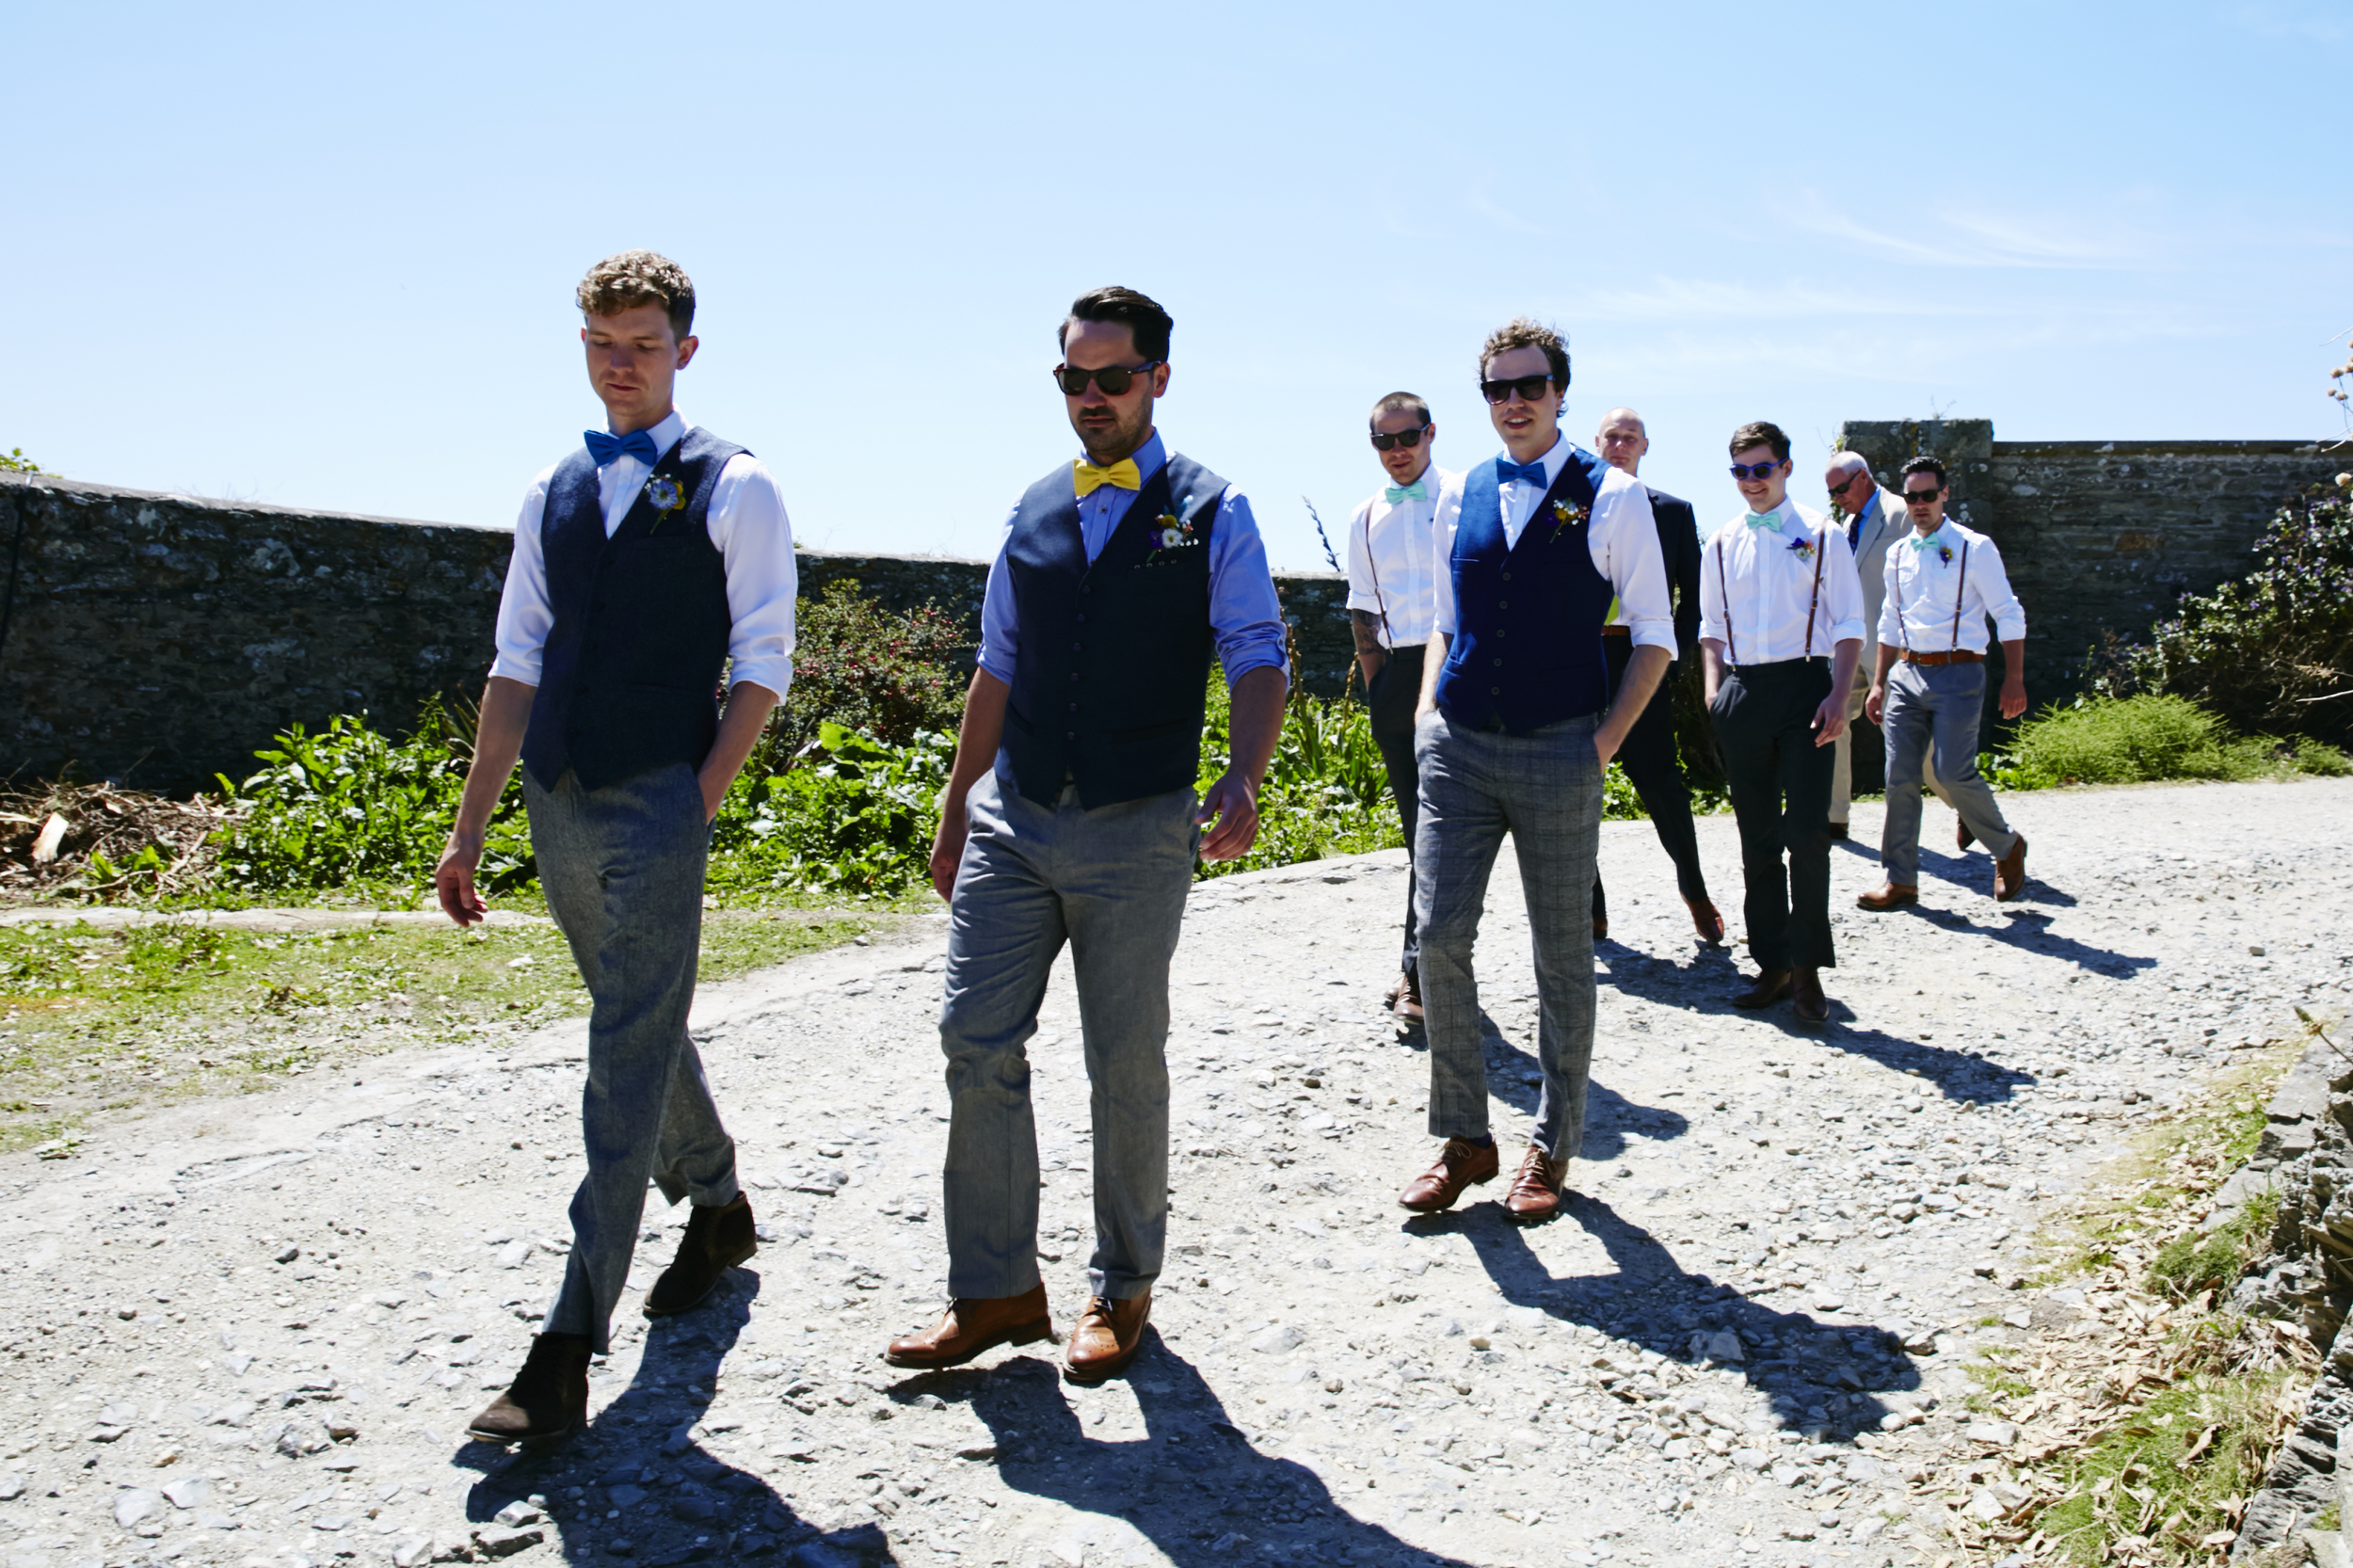 mens-wedding-outfits